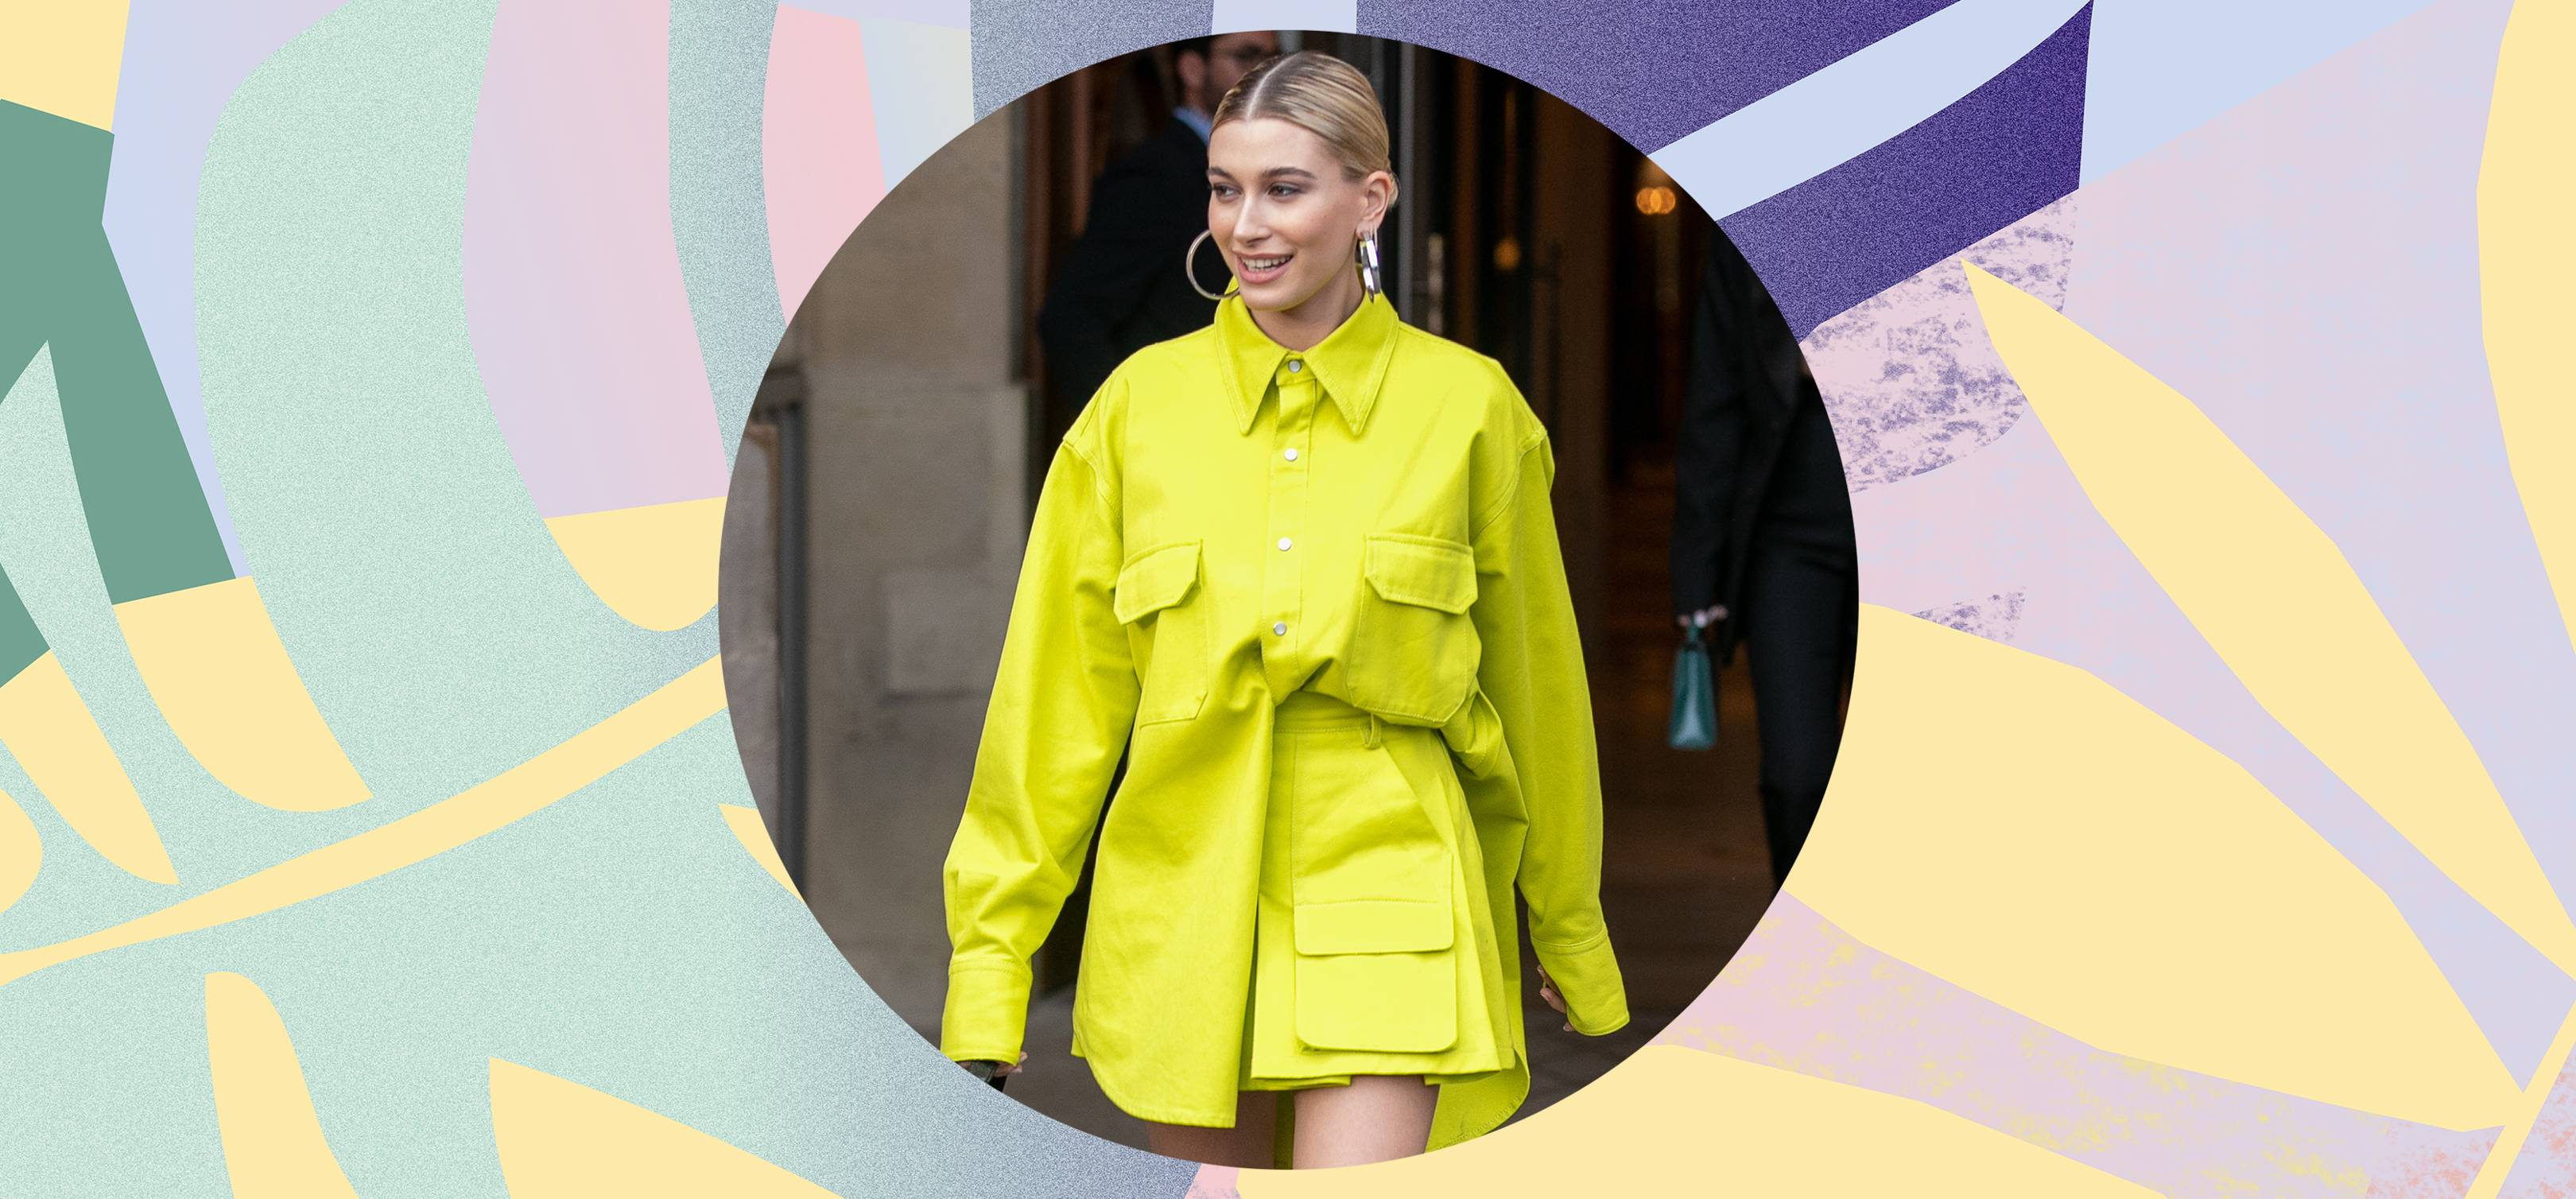 932d4ff5bb94 Hailey Bieber: The girl who grew up on the red carpet and became a fashion  icon